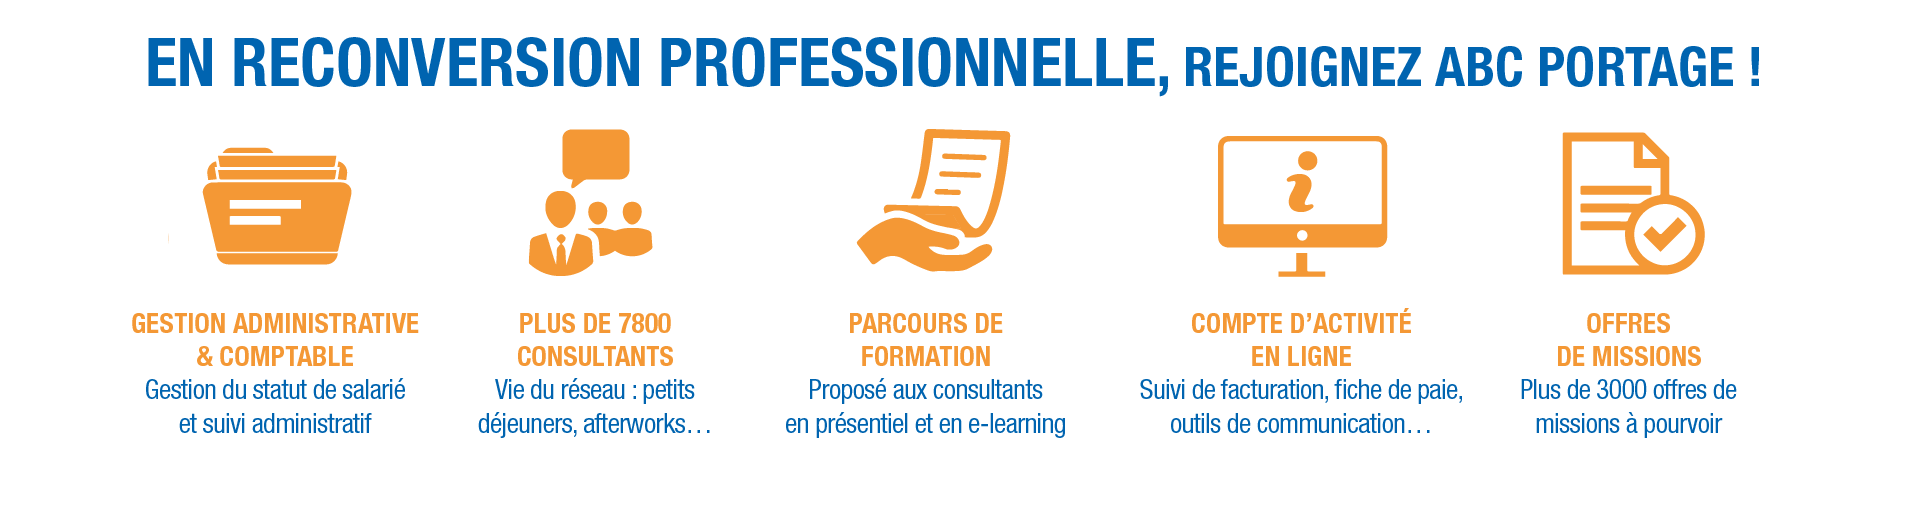 En reconversion professionnelle